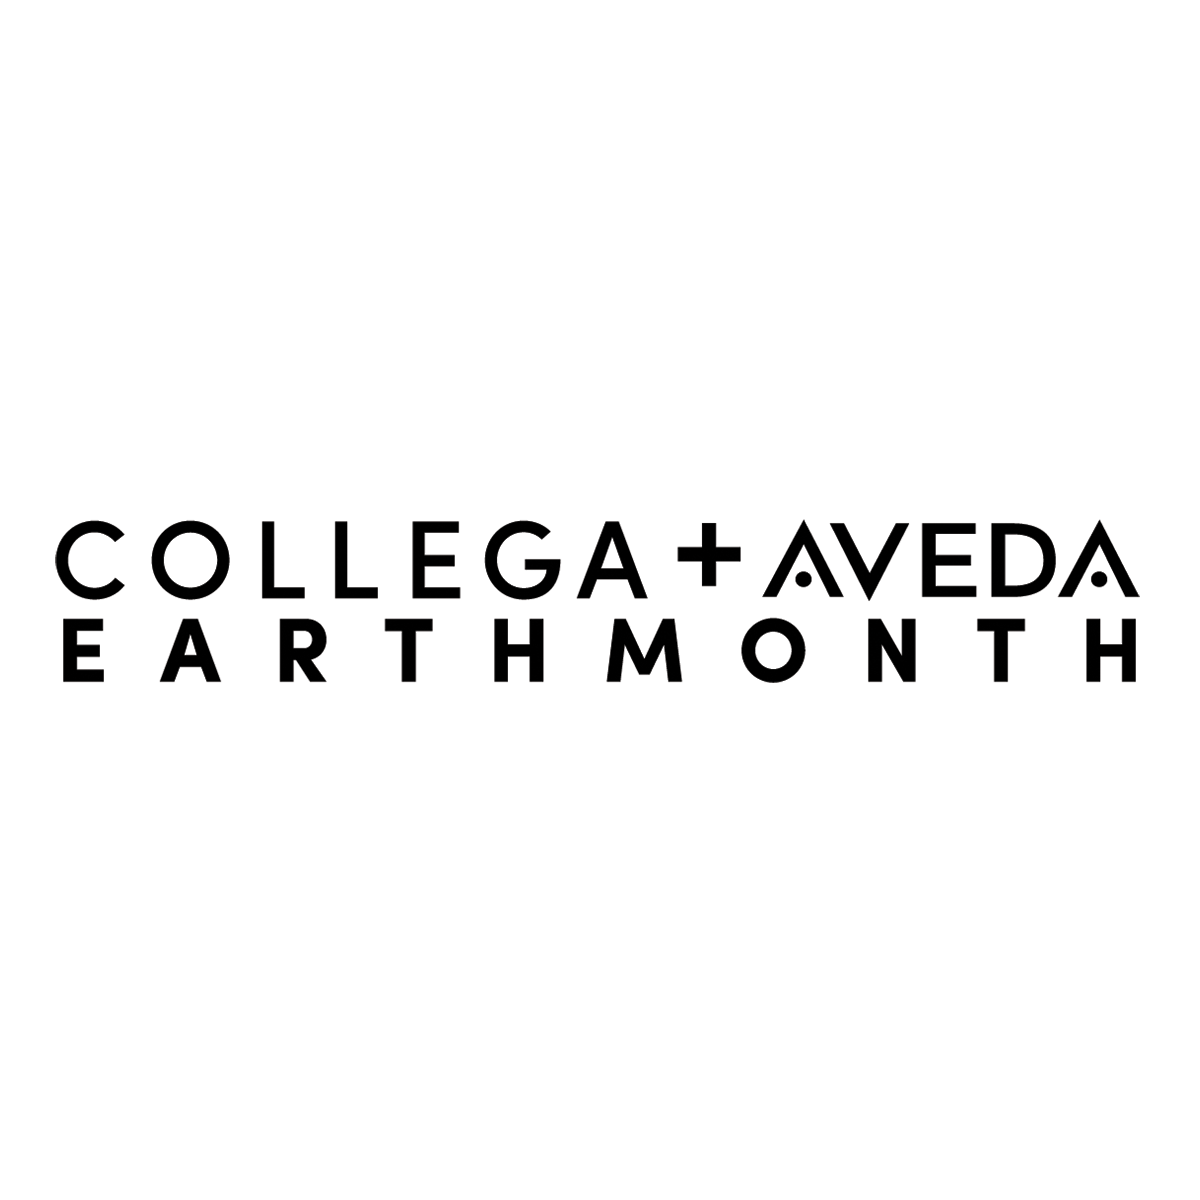 Collega Aveda Earth Month